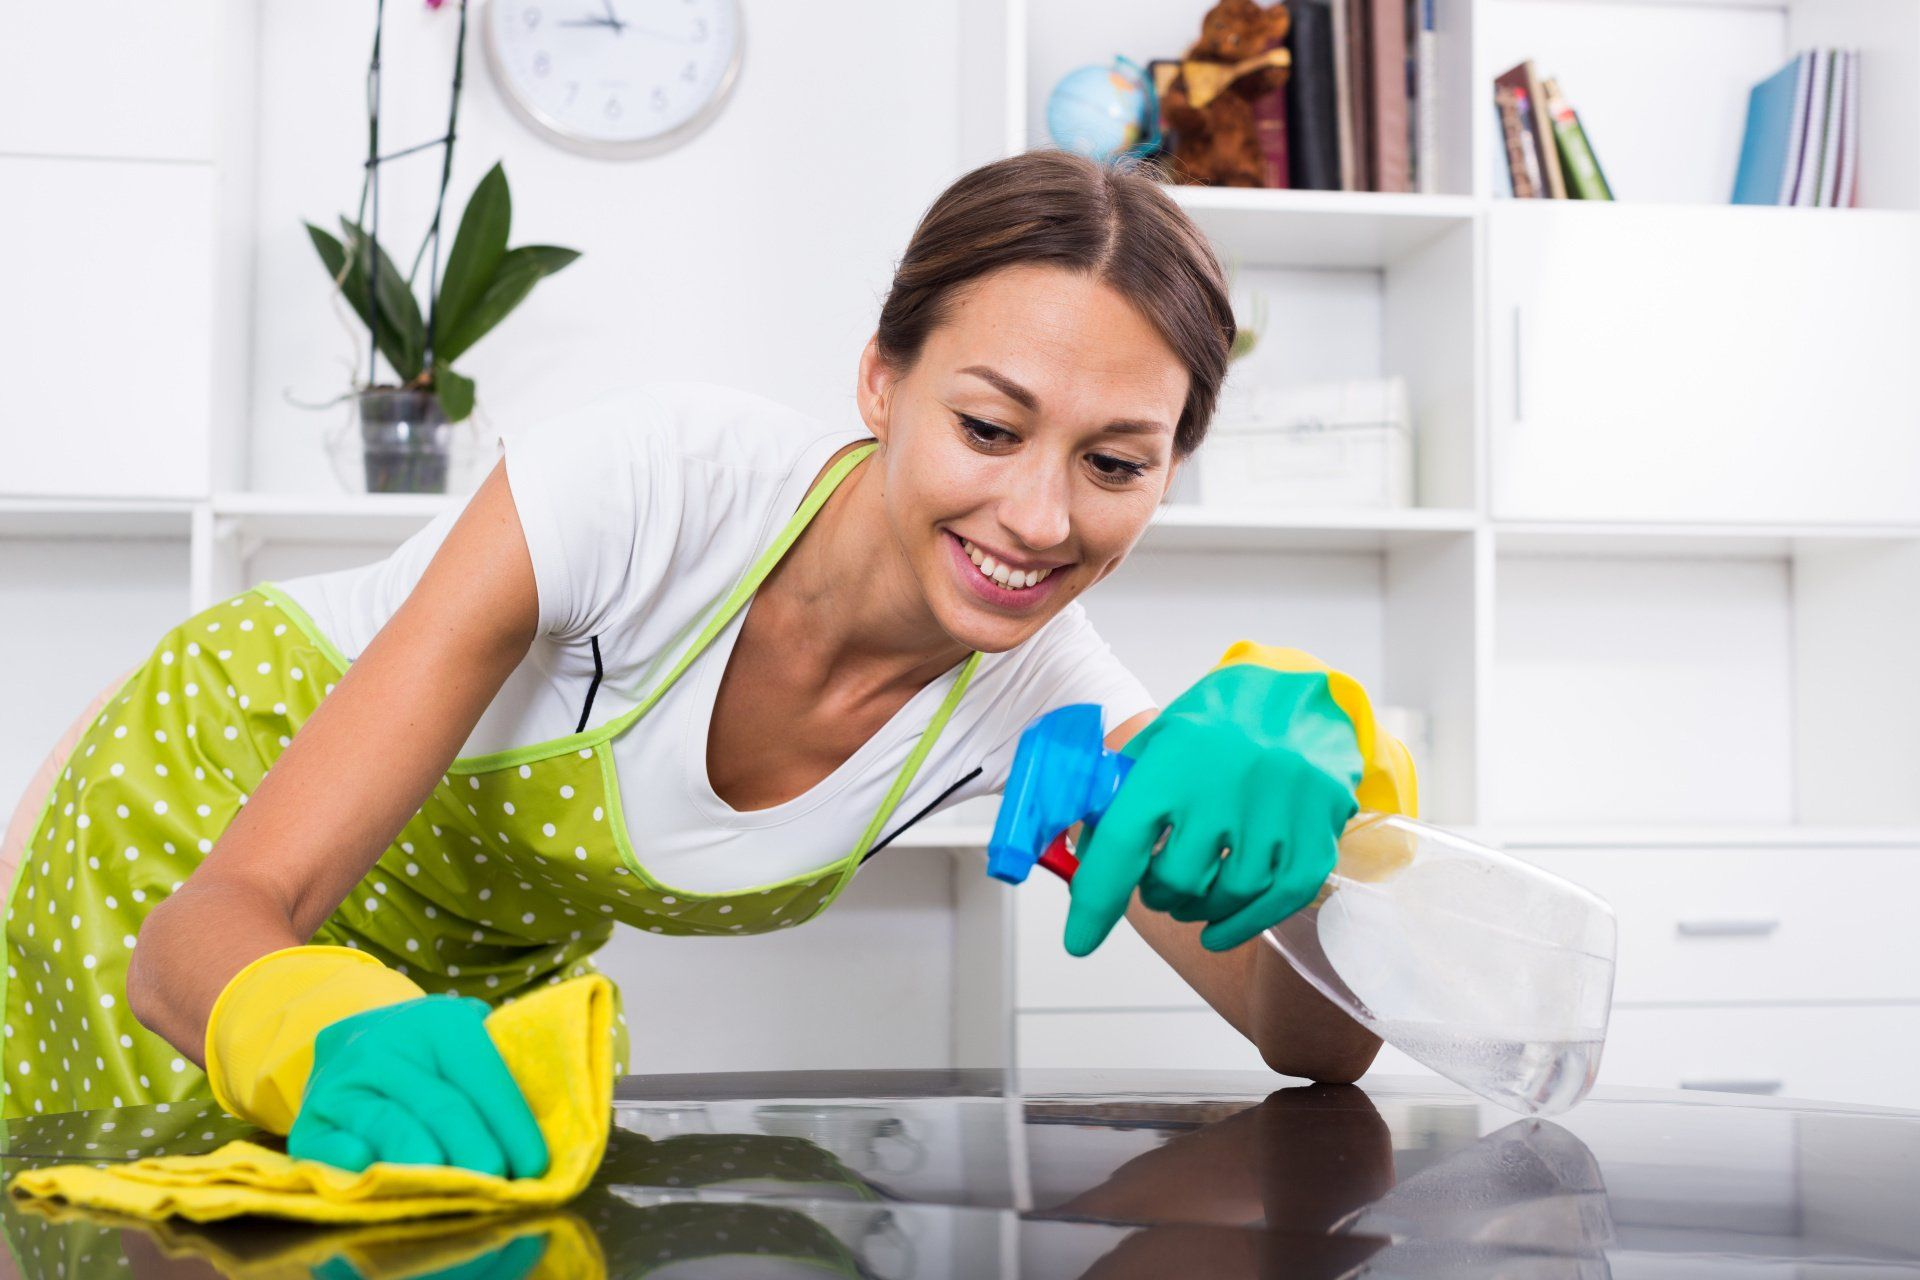 a woman in apron and rubber gloves cleaning a kitchen counter